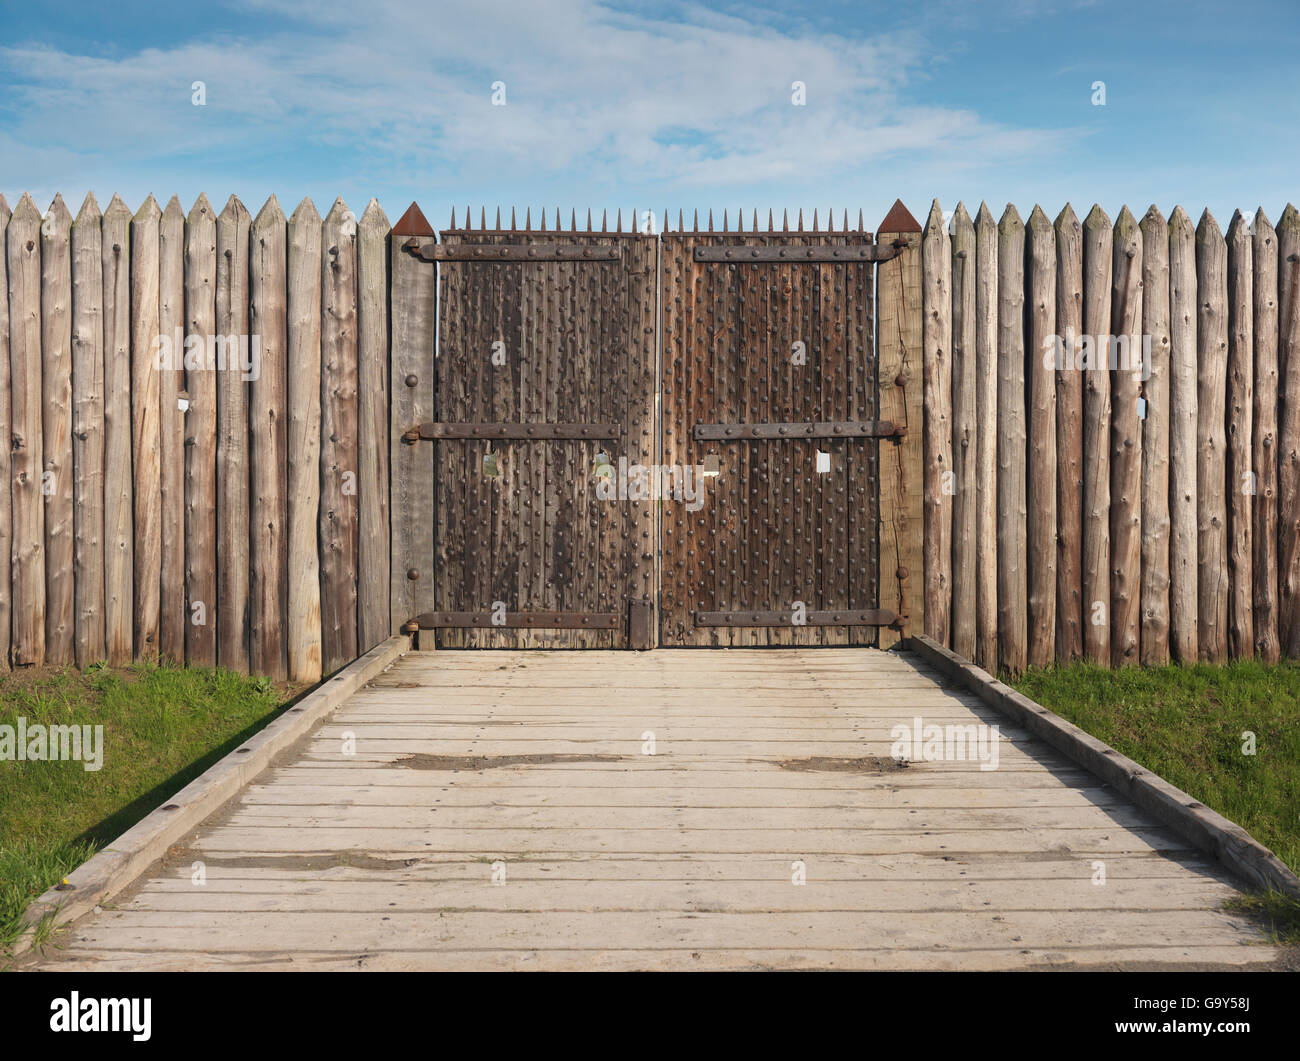 Gates of Fort George, National Historic Site at Niagara-on-the-Lake, Ontario, Canada Stock Photo